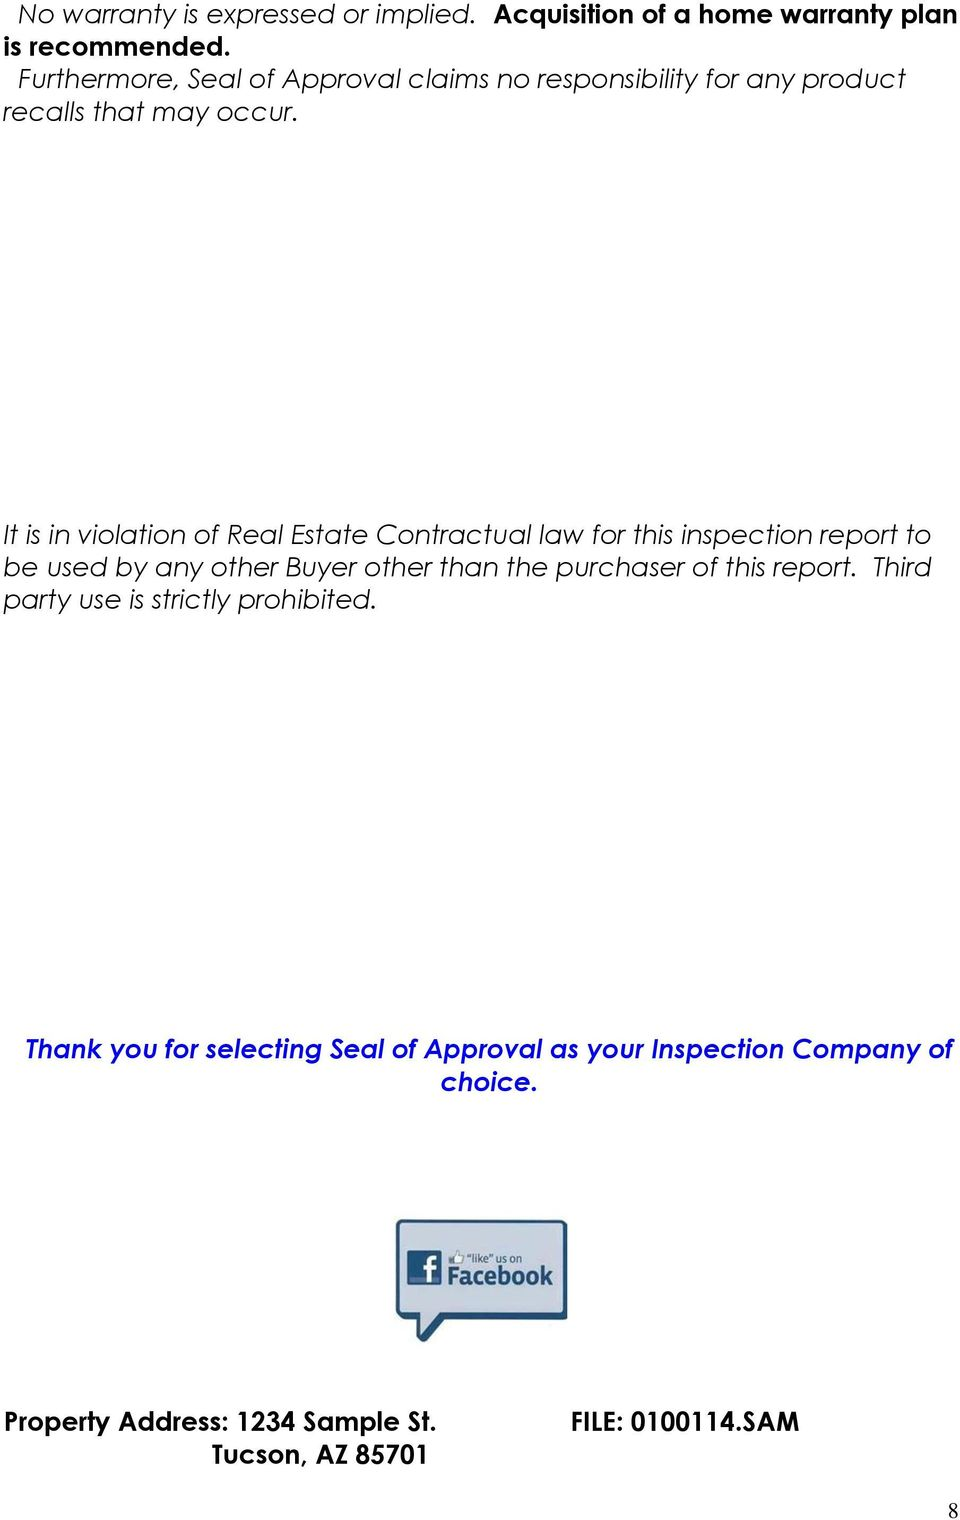 It is in violation of Real Estate Contractual law for this inspection report to be used by any other Buyer other